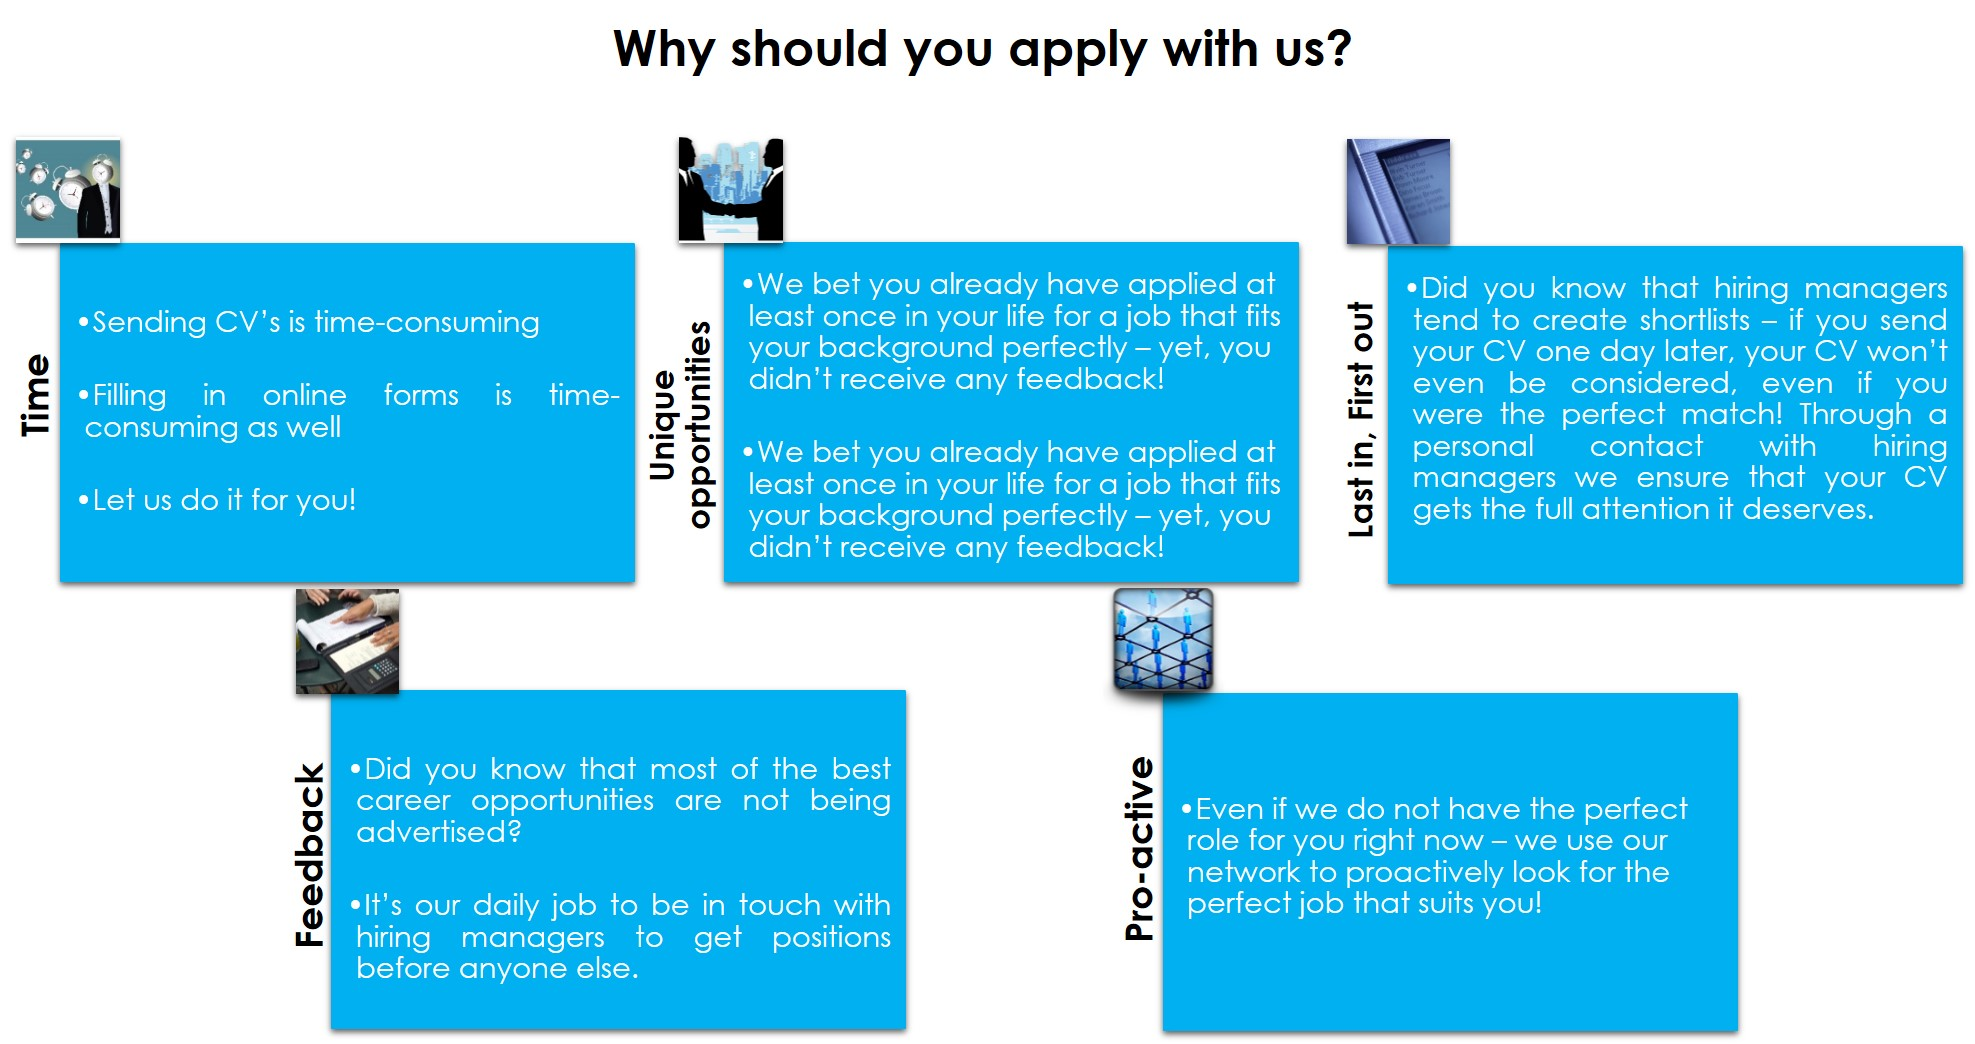 Why should you apply with us